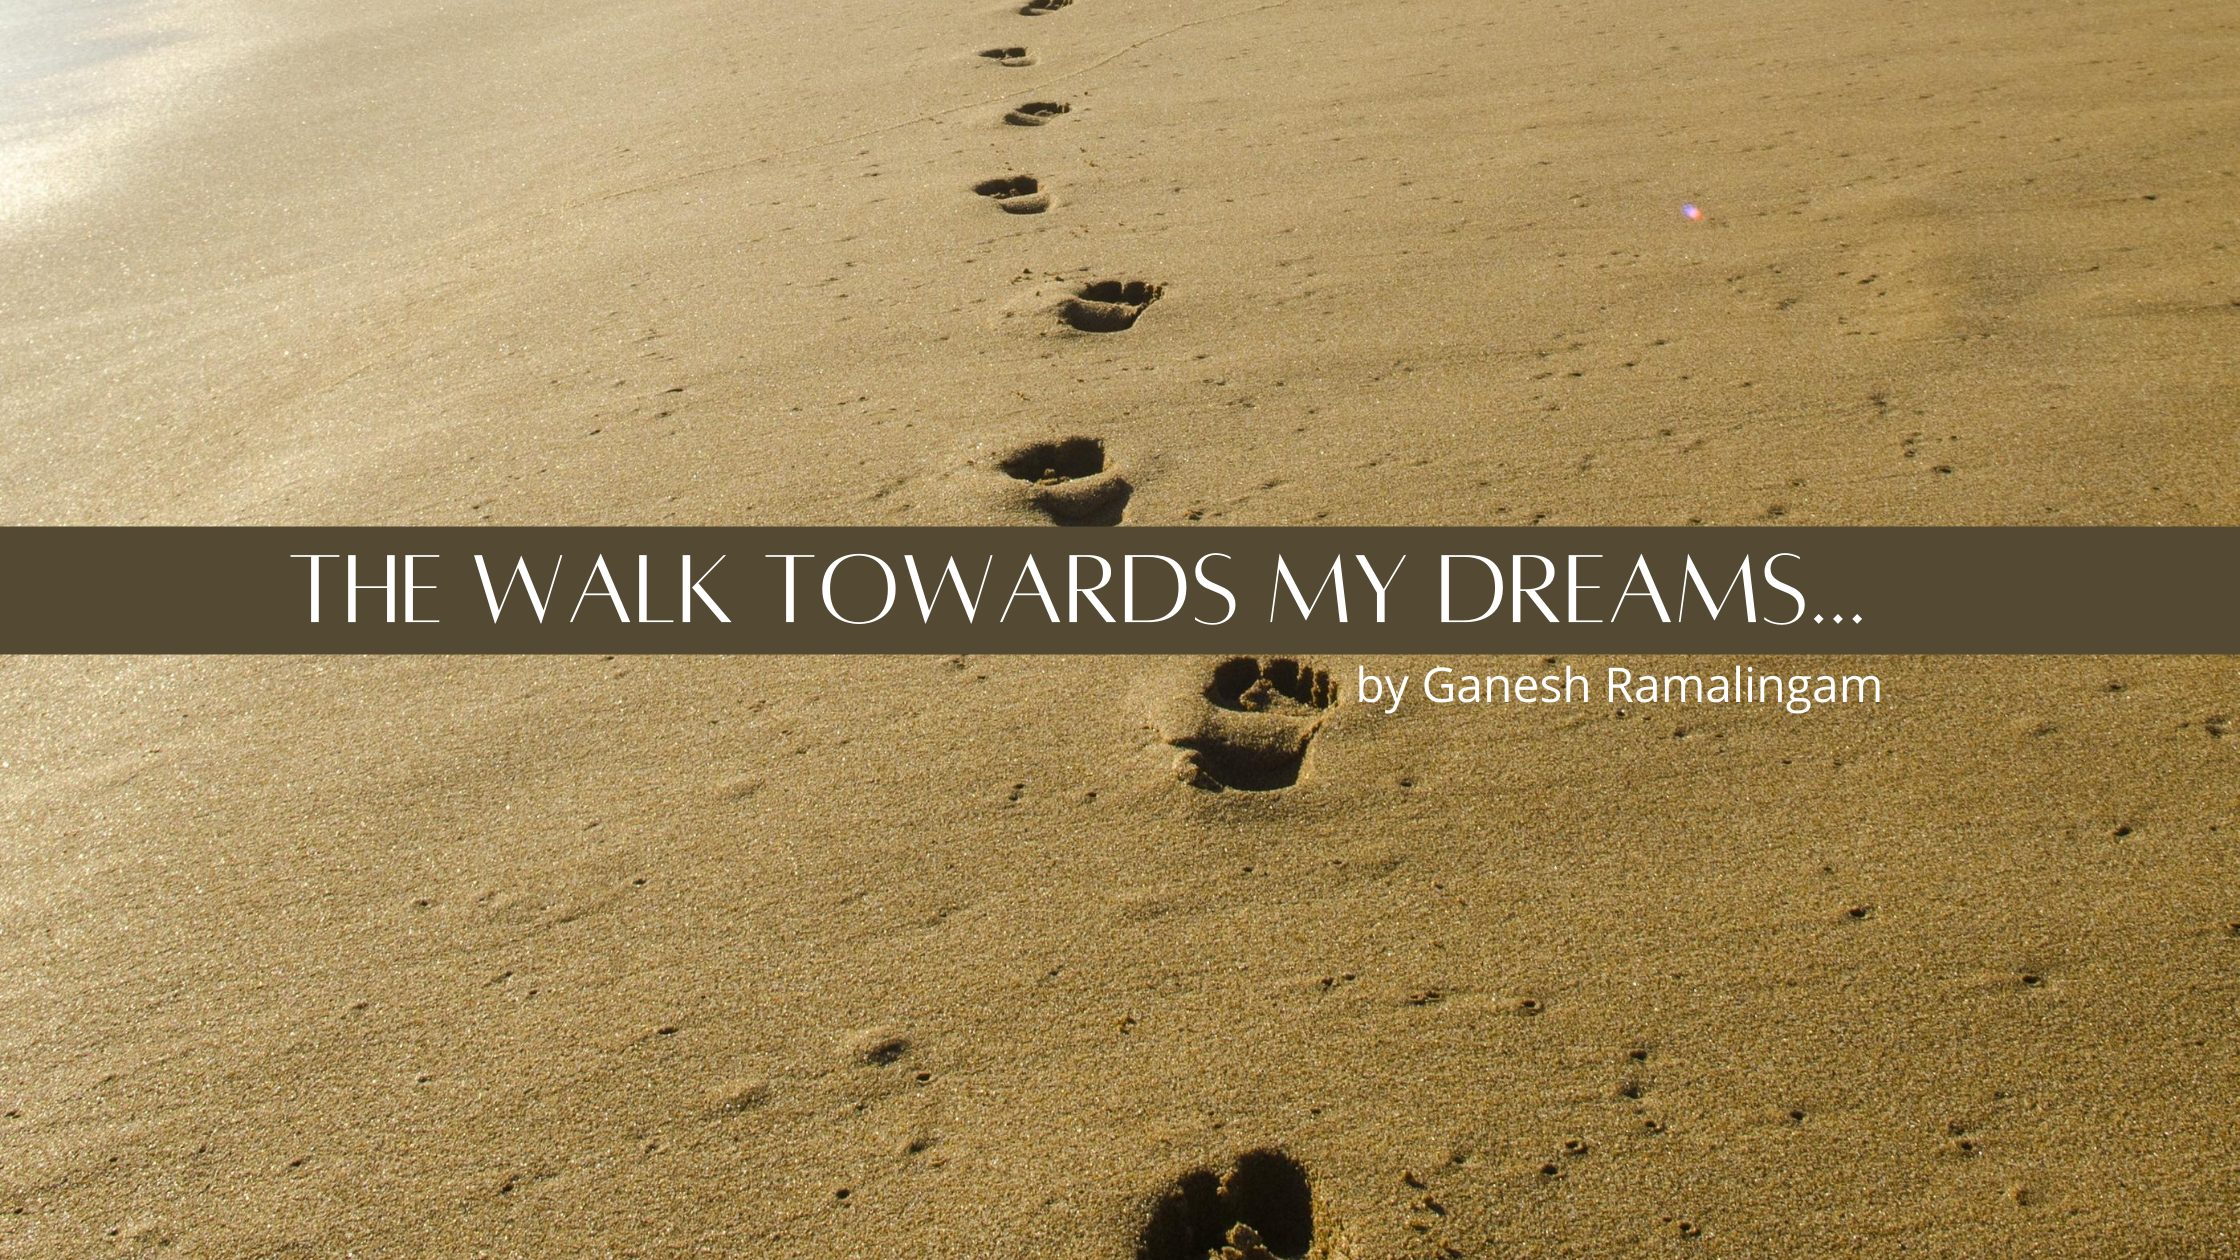 The Walk Towards My Dreams!